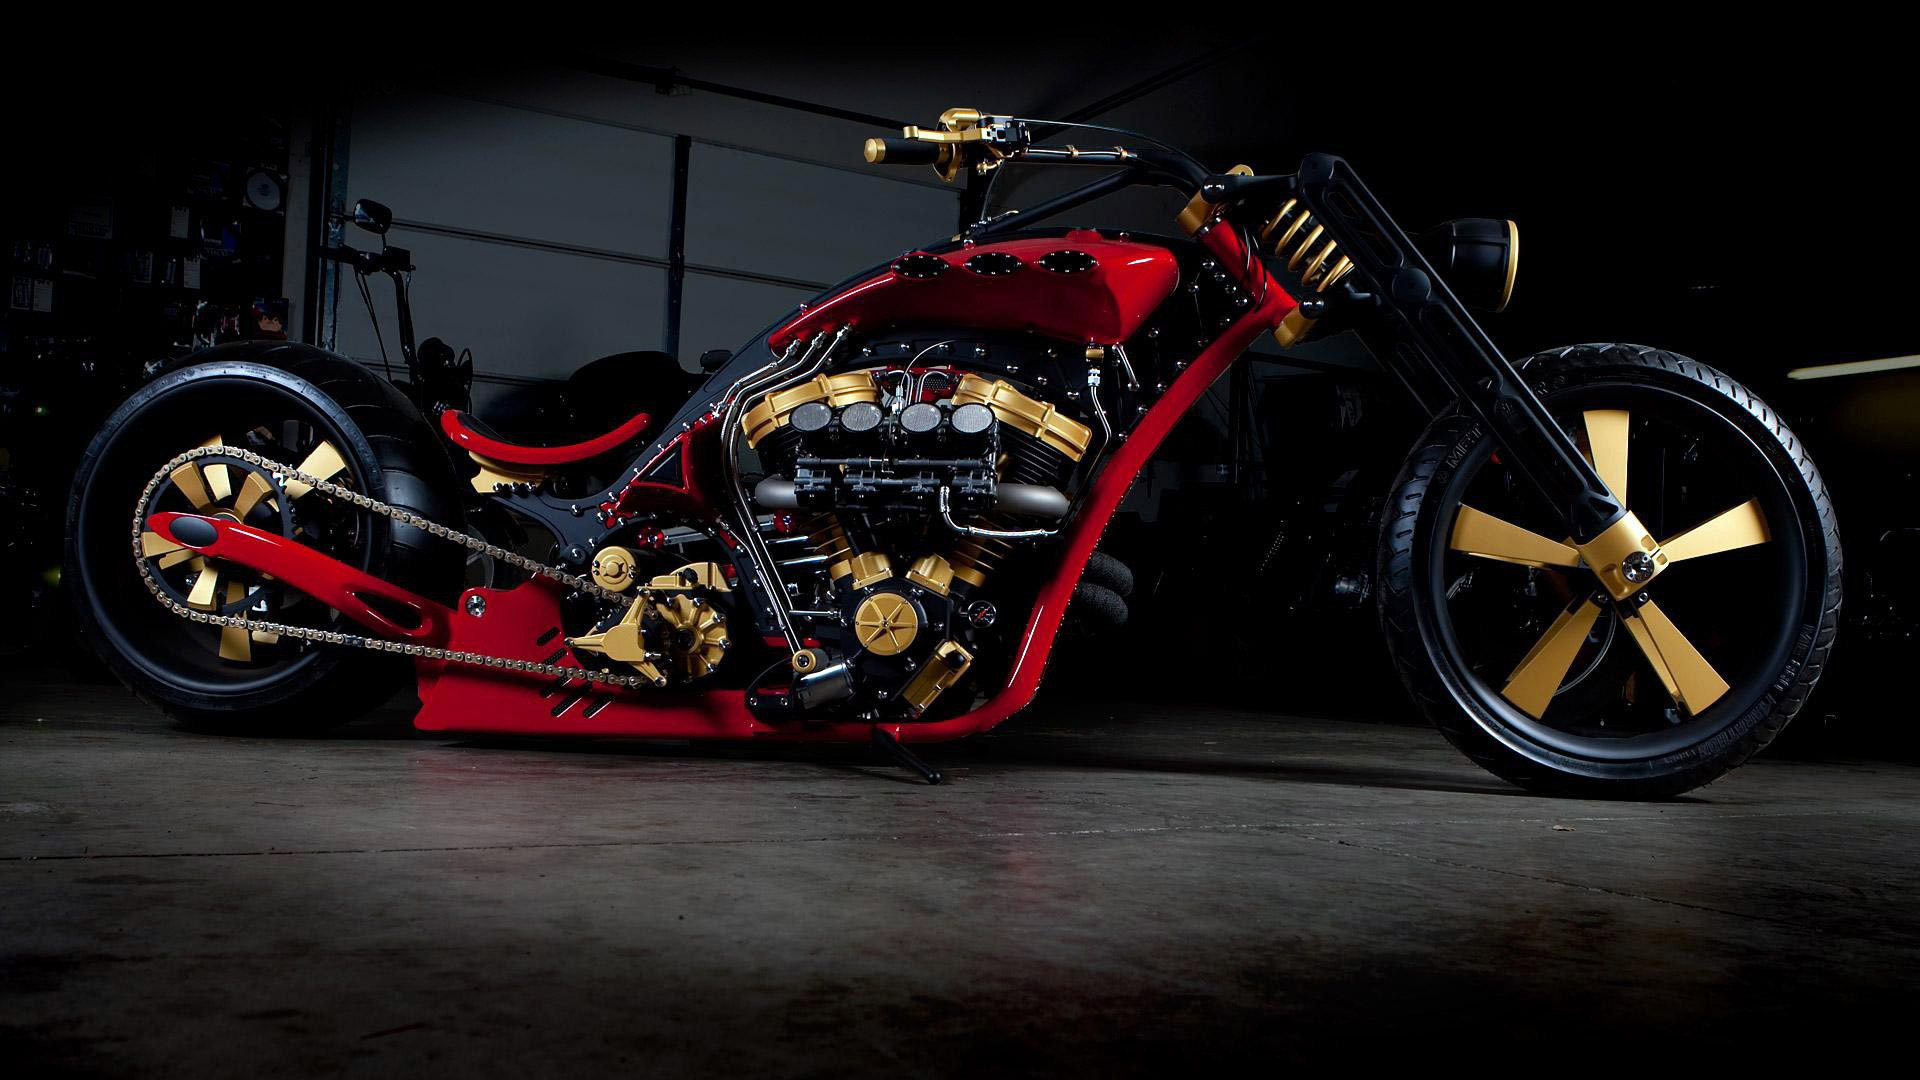 Chopper Motorcycles Wallpaper wallpapers at ...